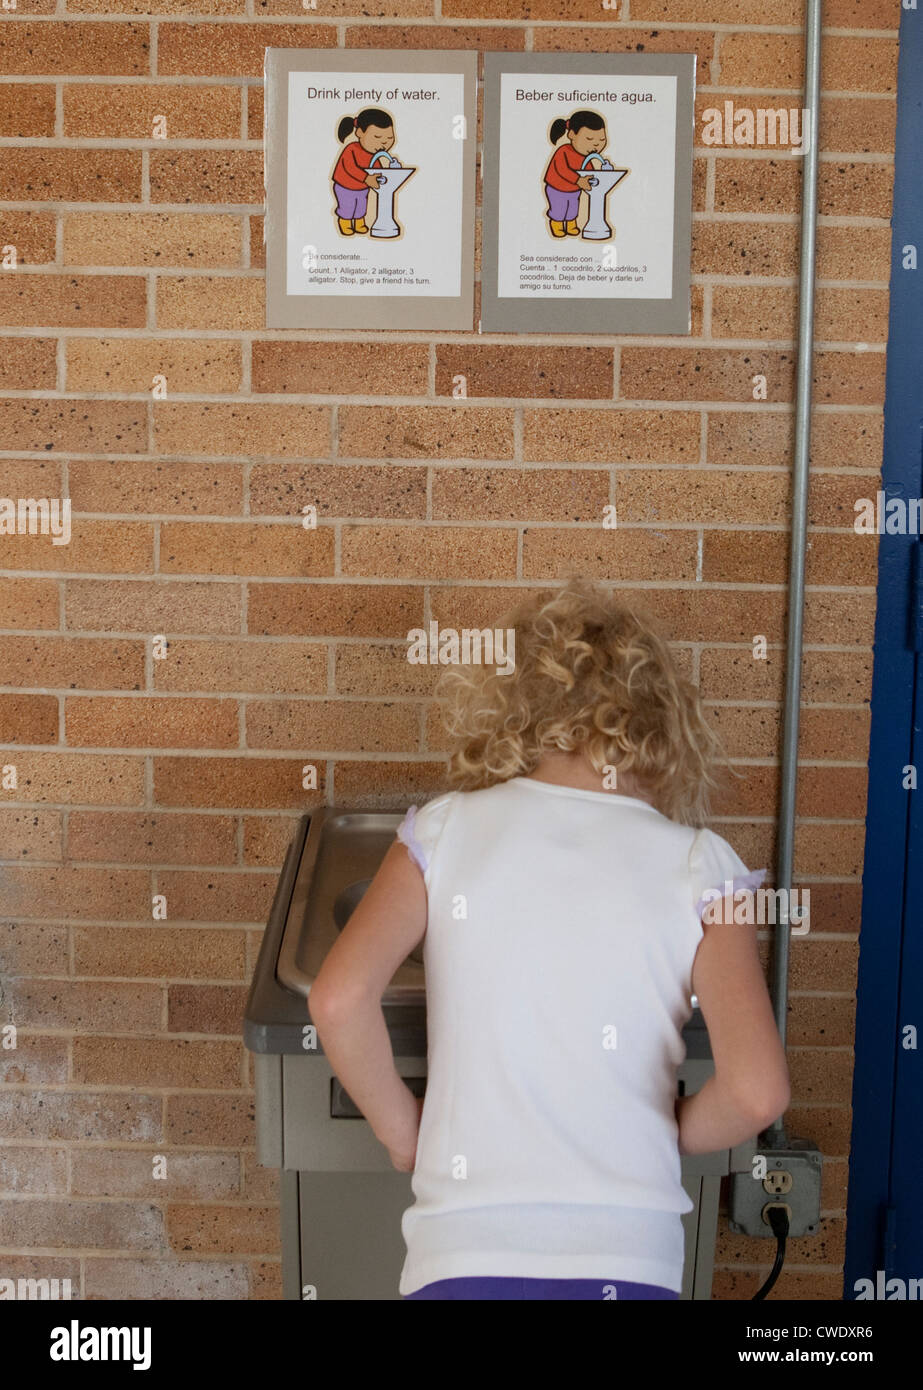 7 year old white girl uses water fountain at elementary school in Austin, Texas above bilingual sign instructing - Stock Image